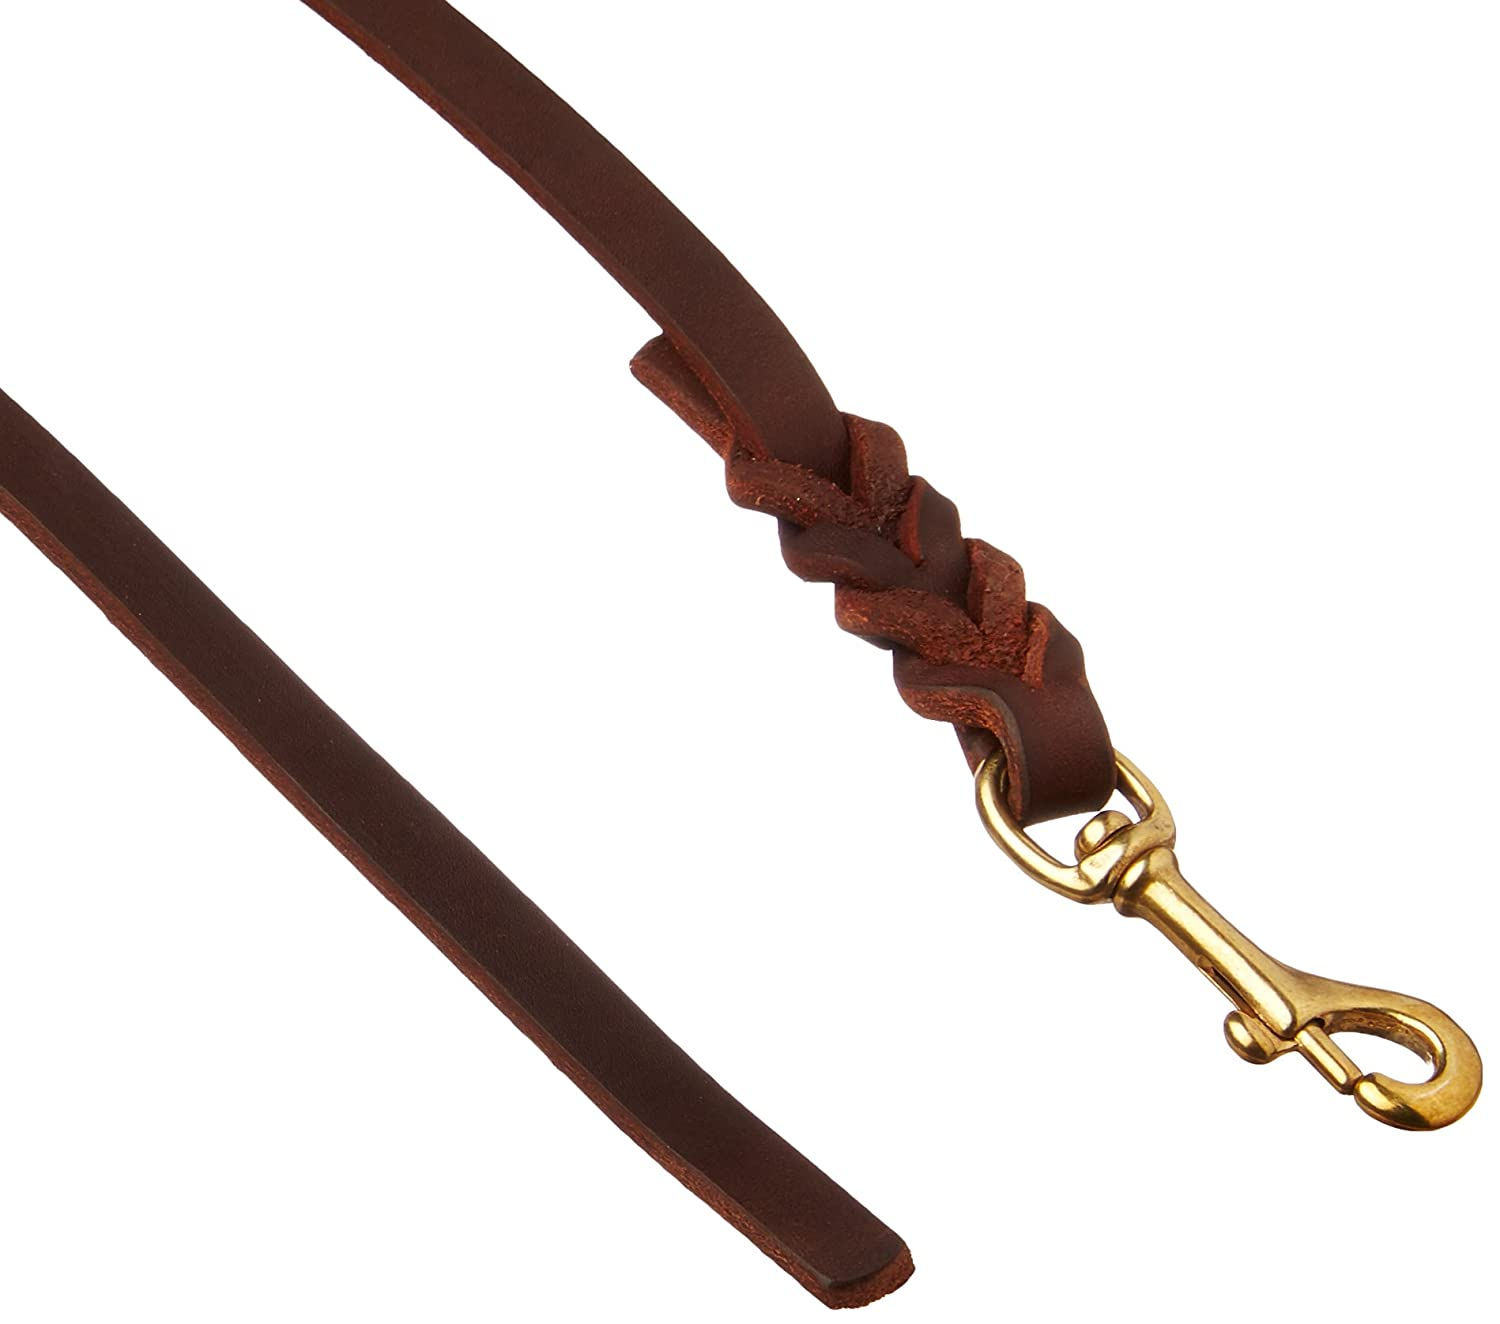 Dean & Tyler Braided Track Dog Leash with Hardware, 35-Feet by 1 2-Inch Wide, Brown